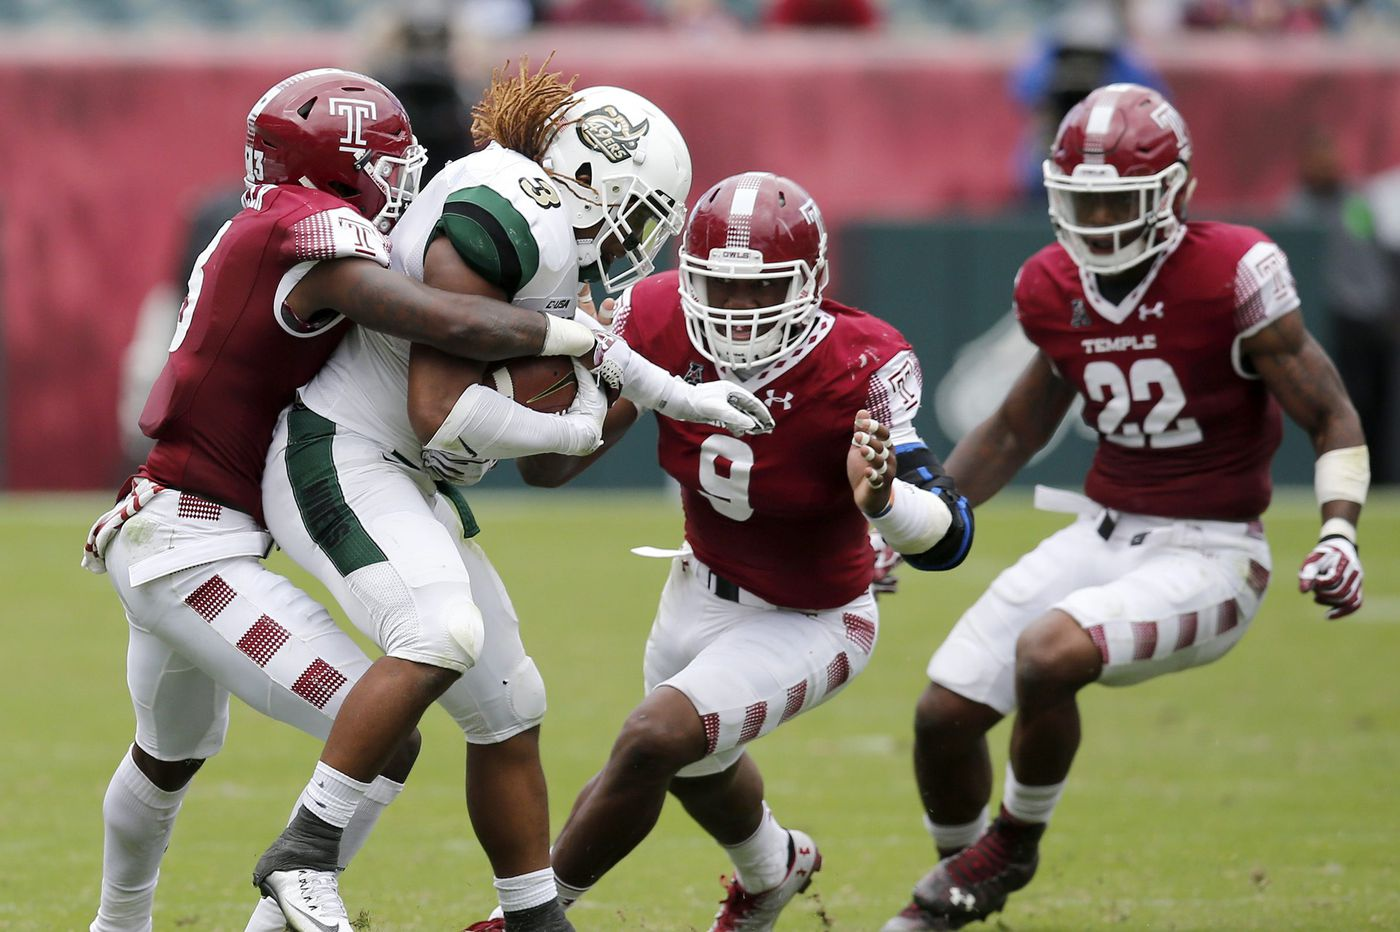 Nine Temple players from last year's team are in NFL camps